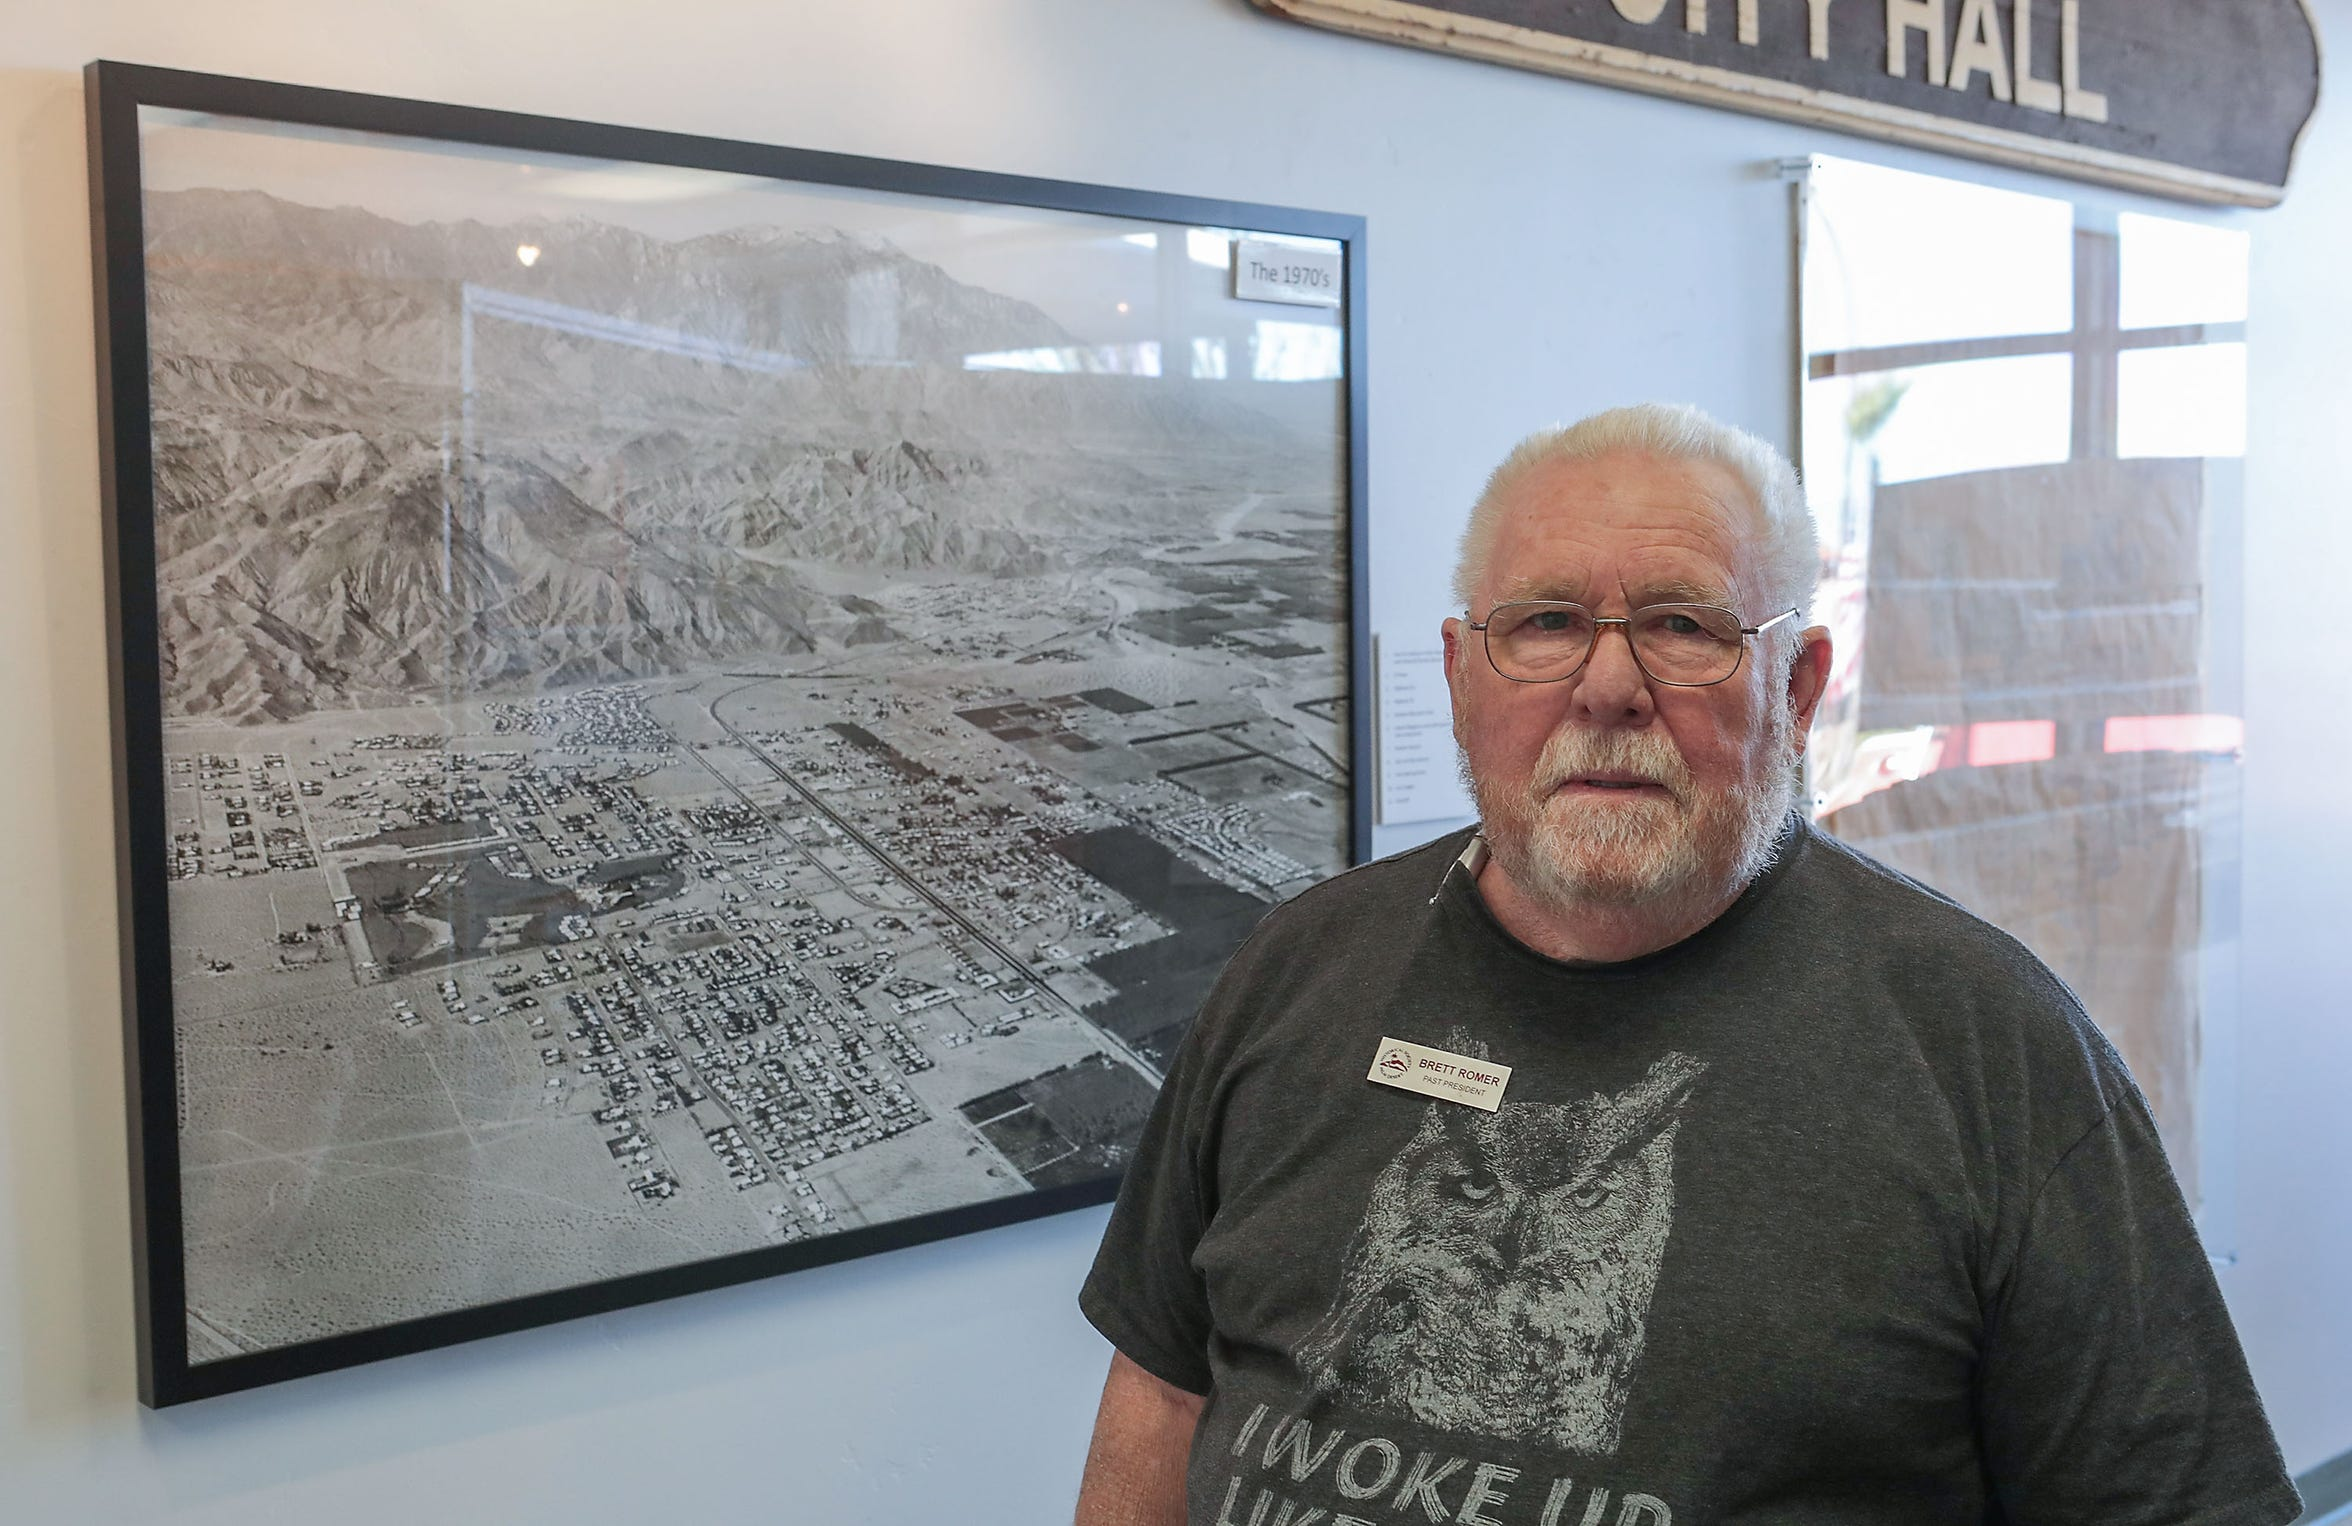 Brett Romer of the Historical Society of Palm Desert stands near an old aerial photograph of Palm Desert on Nov. 8, 2019. Romer moved to Palm Desert in 1964 to take a teaching job at College of the Desert, which had just opened to students two years before.